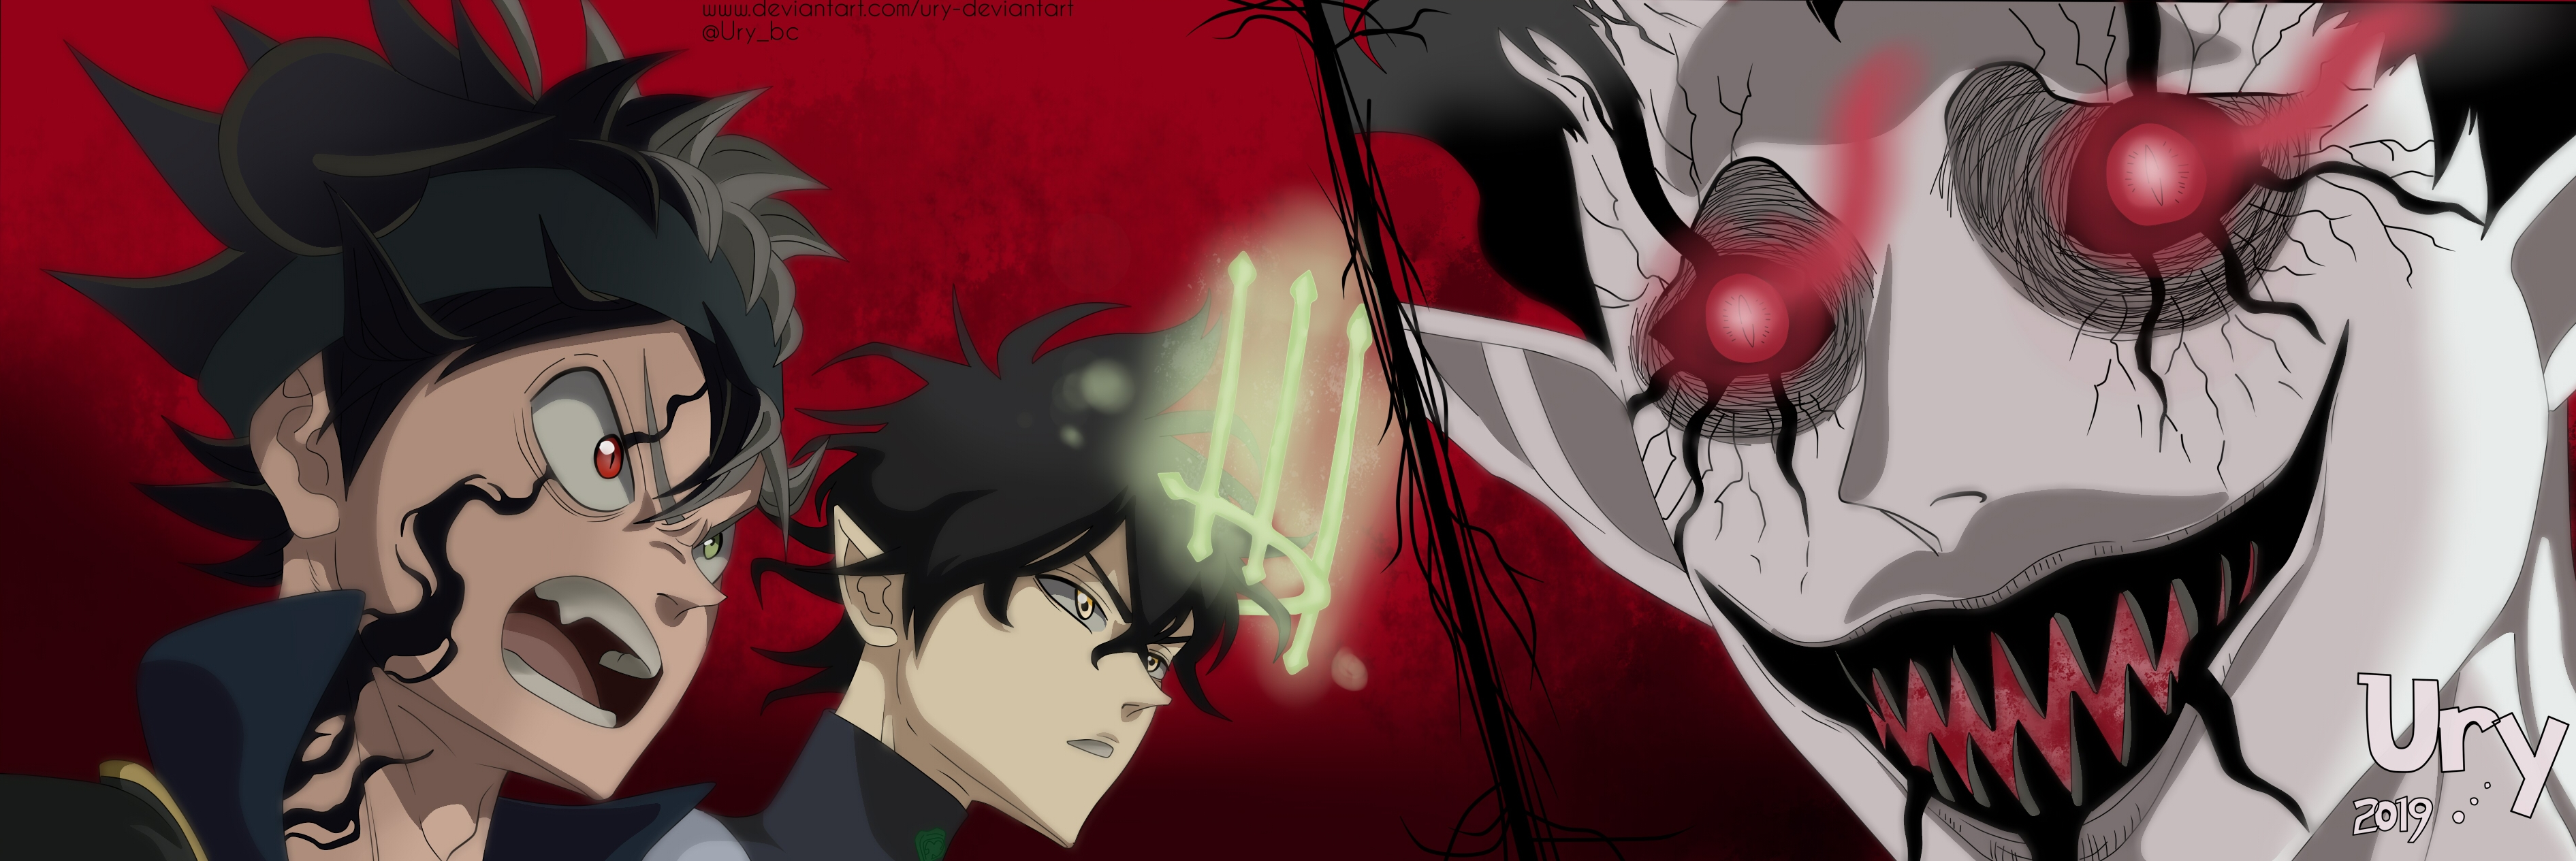 Black Clover Asta And Yuno Vs Devil By Ury Deviantart On Deviantart